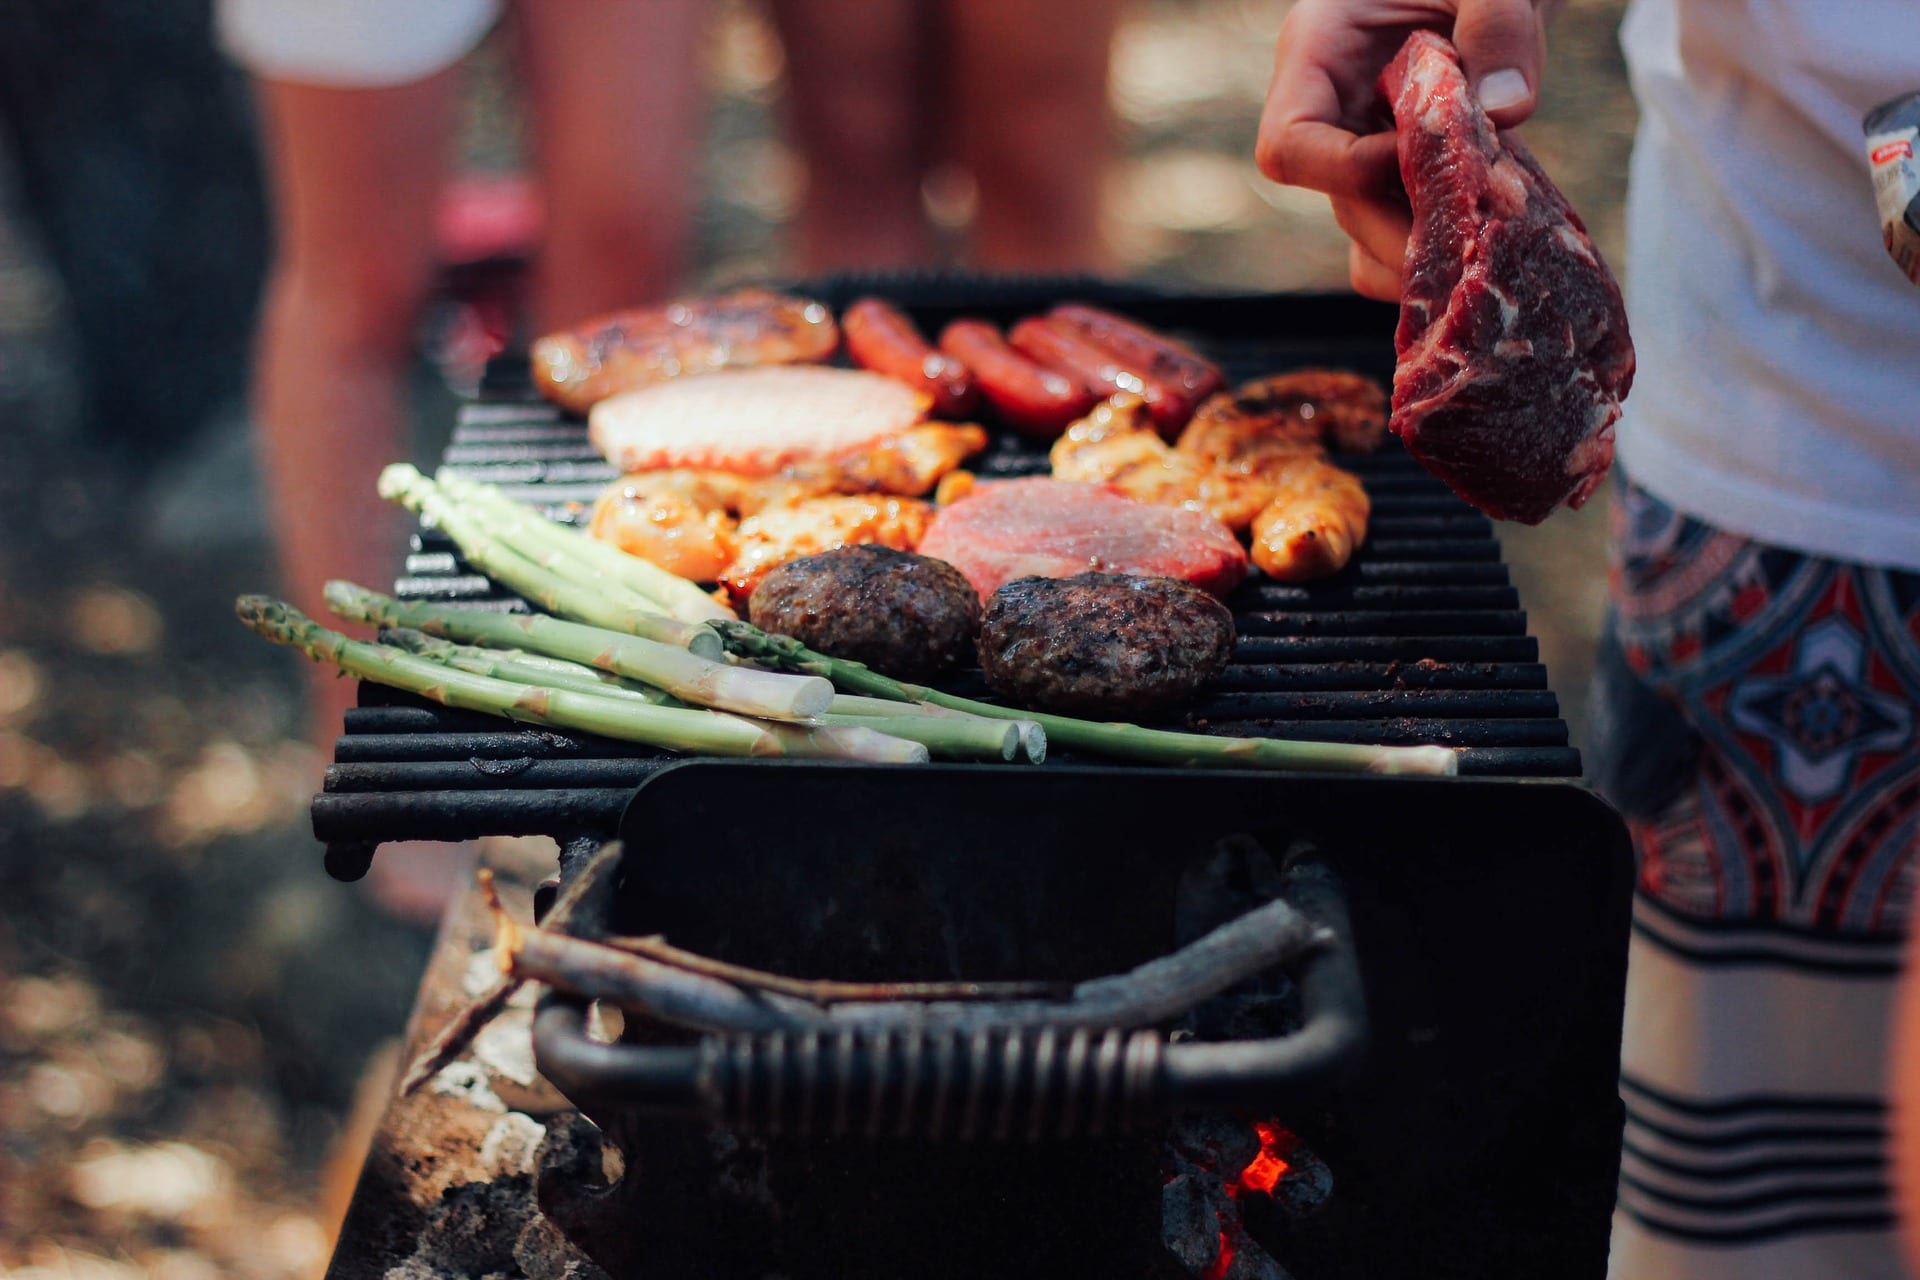 From the Liverpool Fire Department: Tips on grilling safety